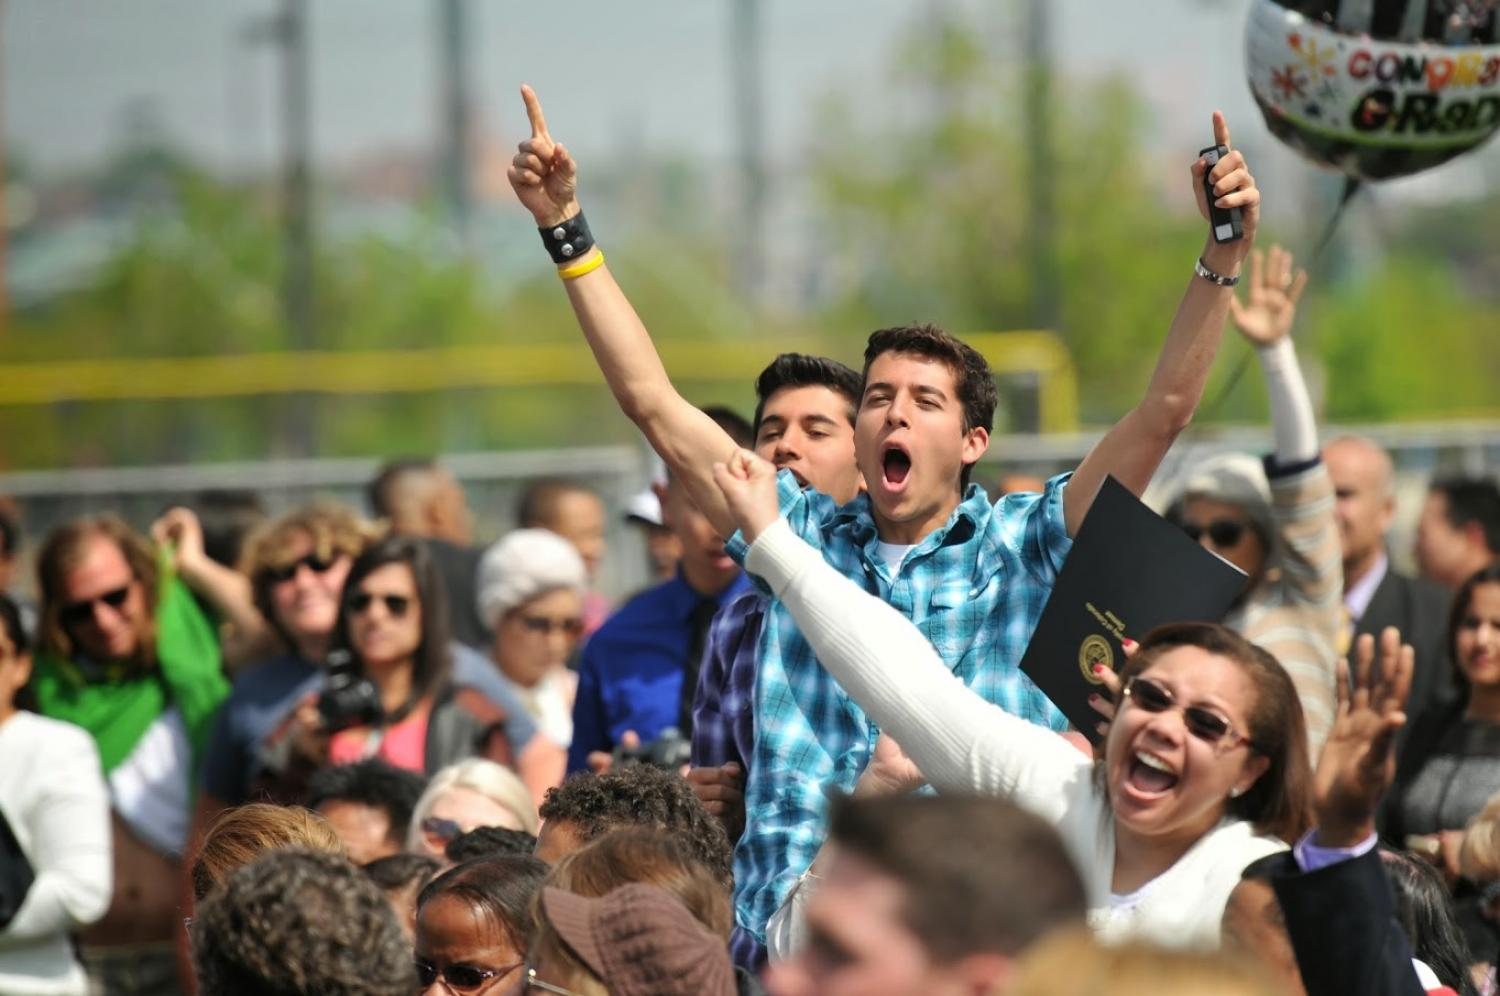 Photo of cheering at commencement